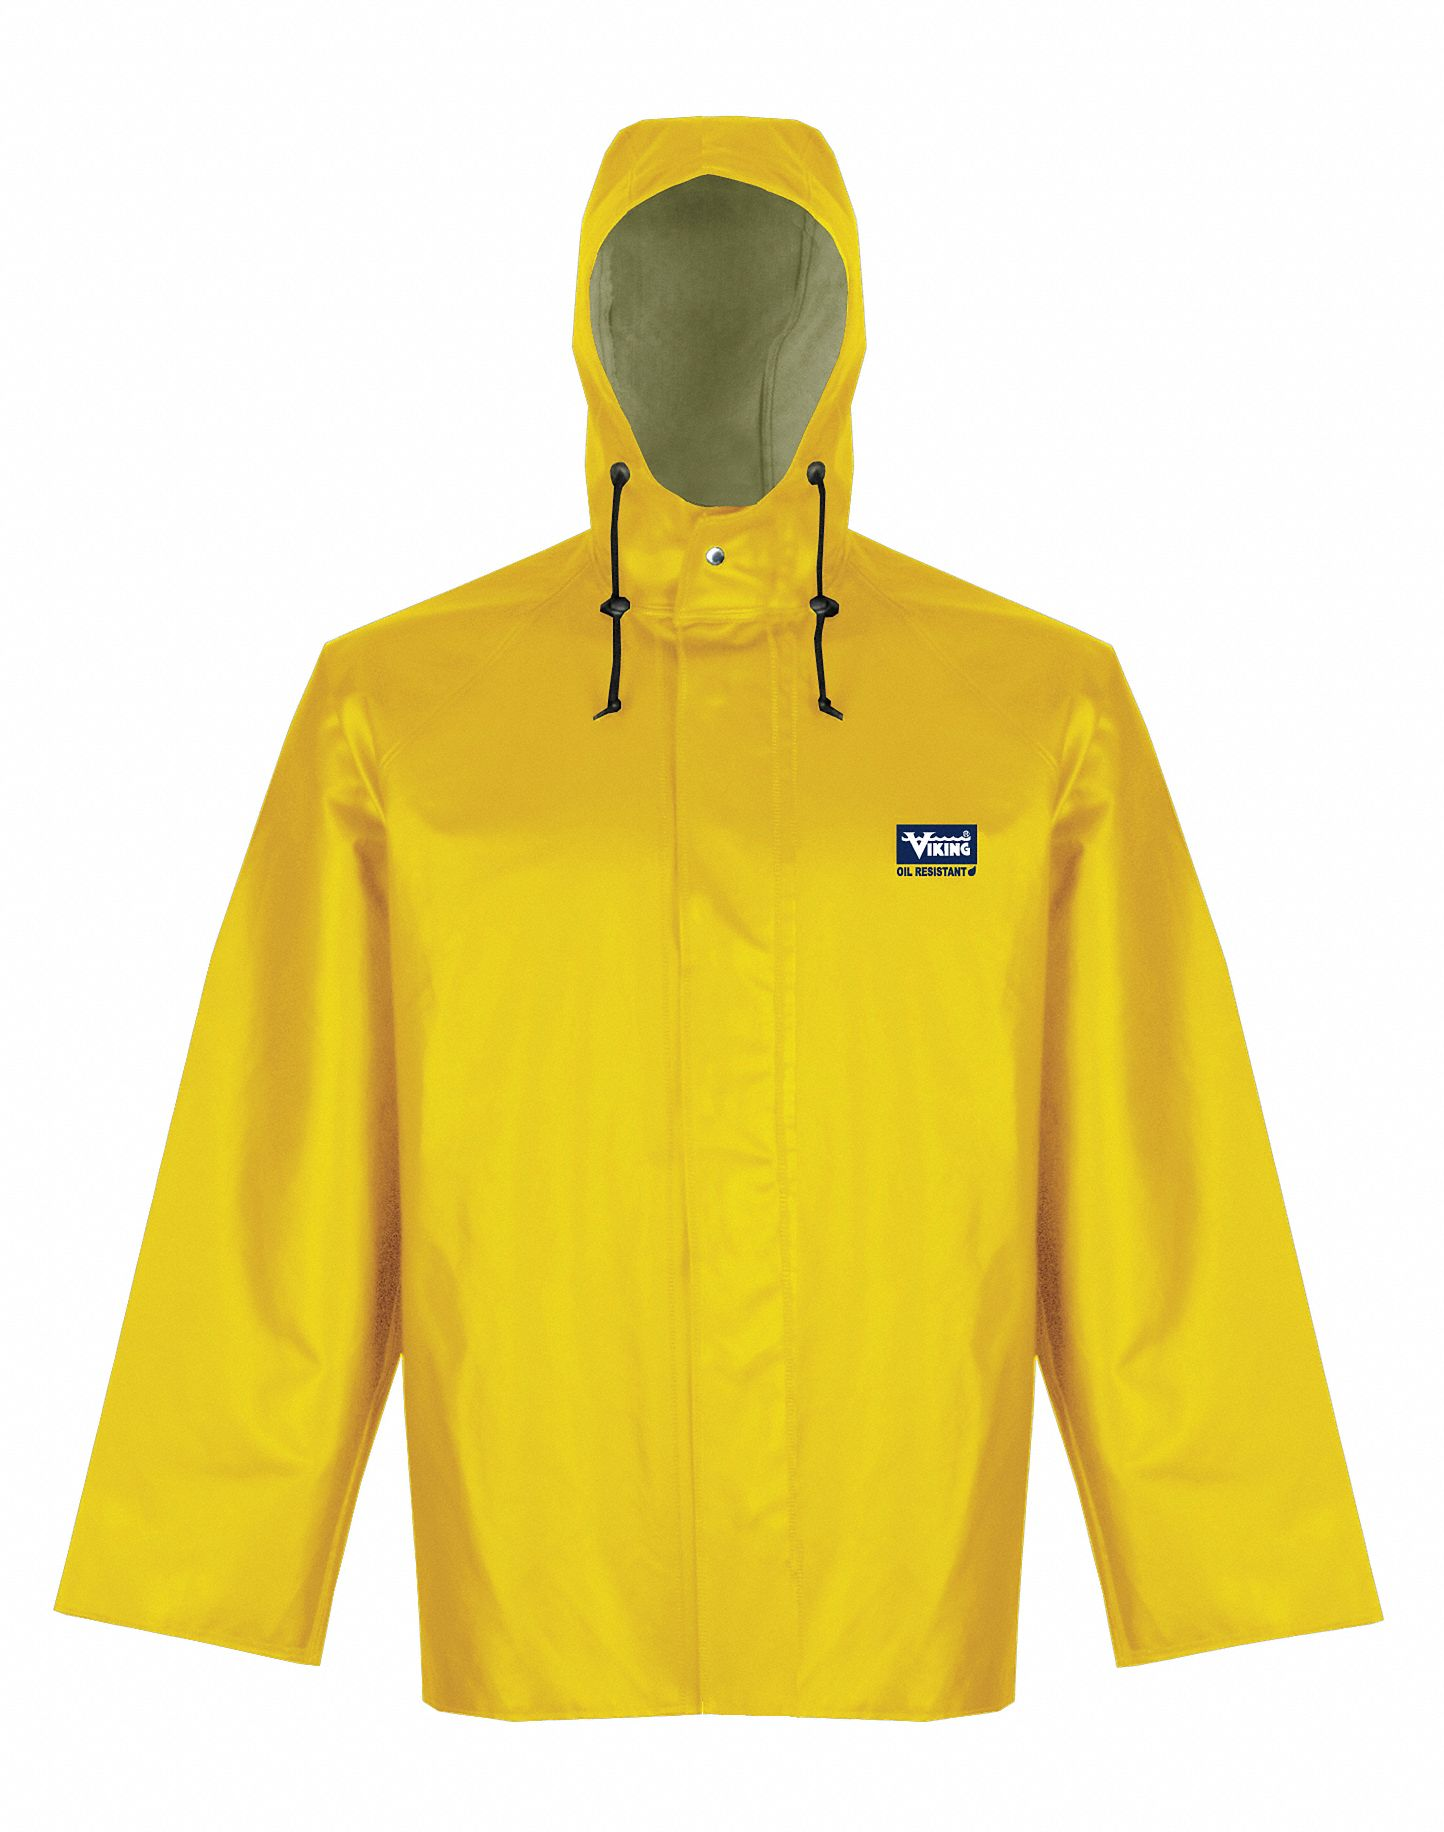 newest collection new season big selection Hooded Rain Jacket, Yellow, 37 Chest, Men, S